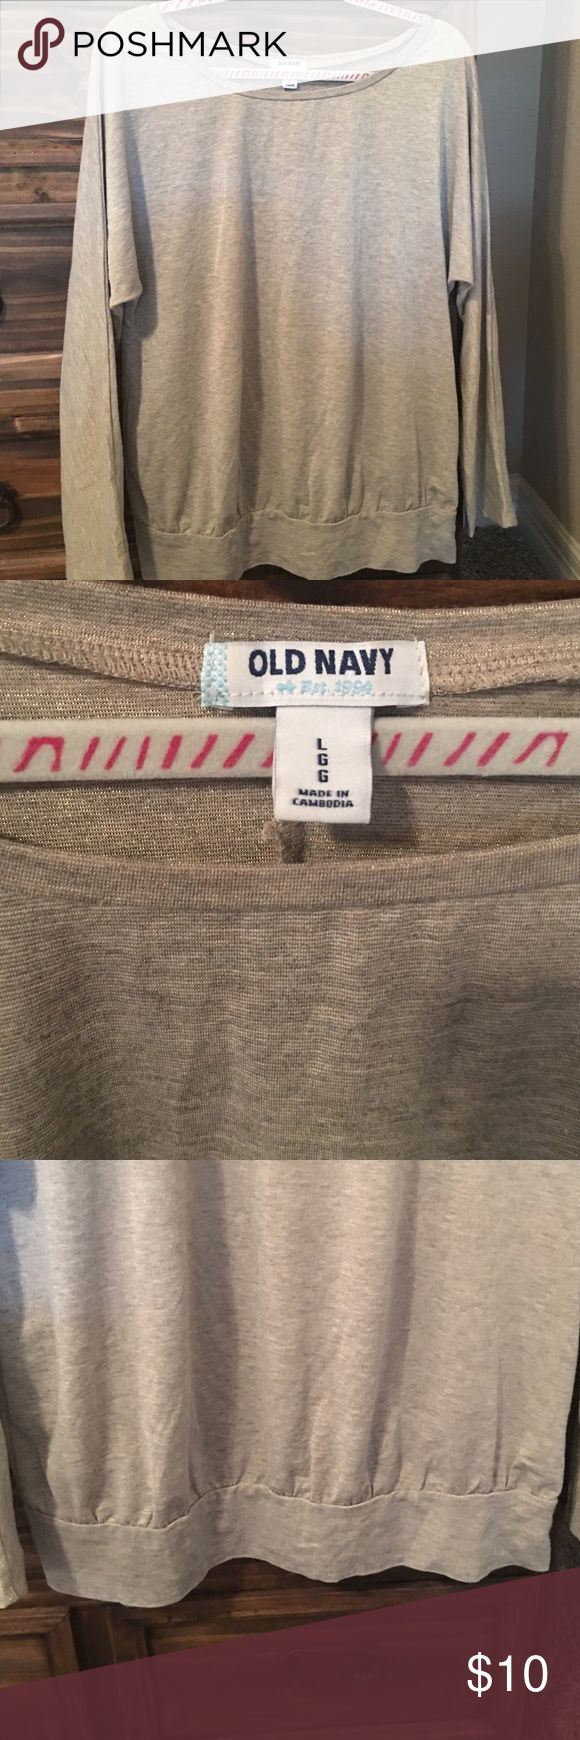 Old Navy long sleeve top size large Old Navy long sleeve top.  Size large.  Gold shimmer color,  long sleeve with banded waist band.  Worn once. Old Navy Tops Blouses